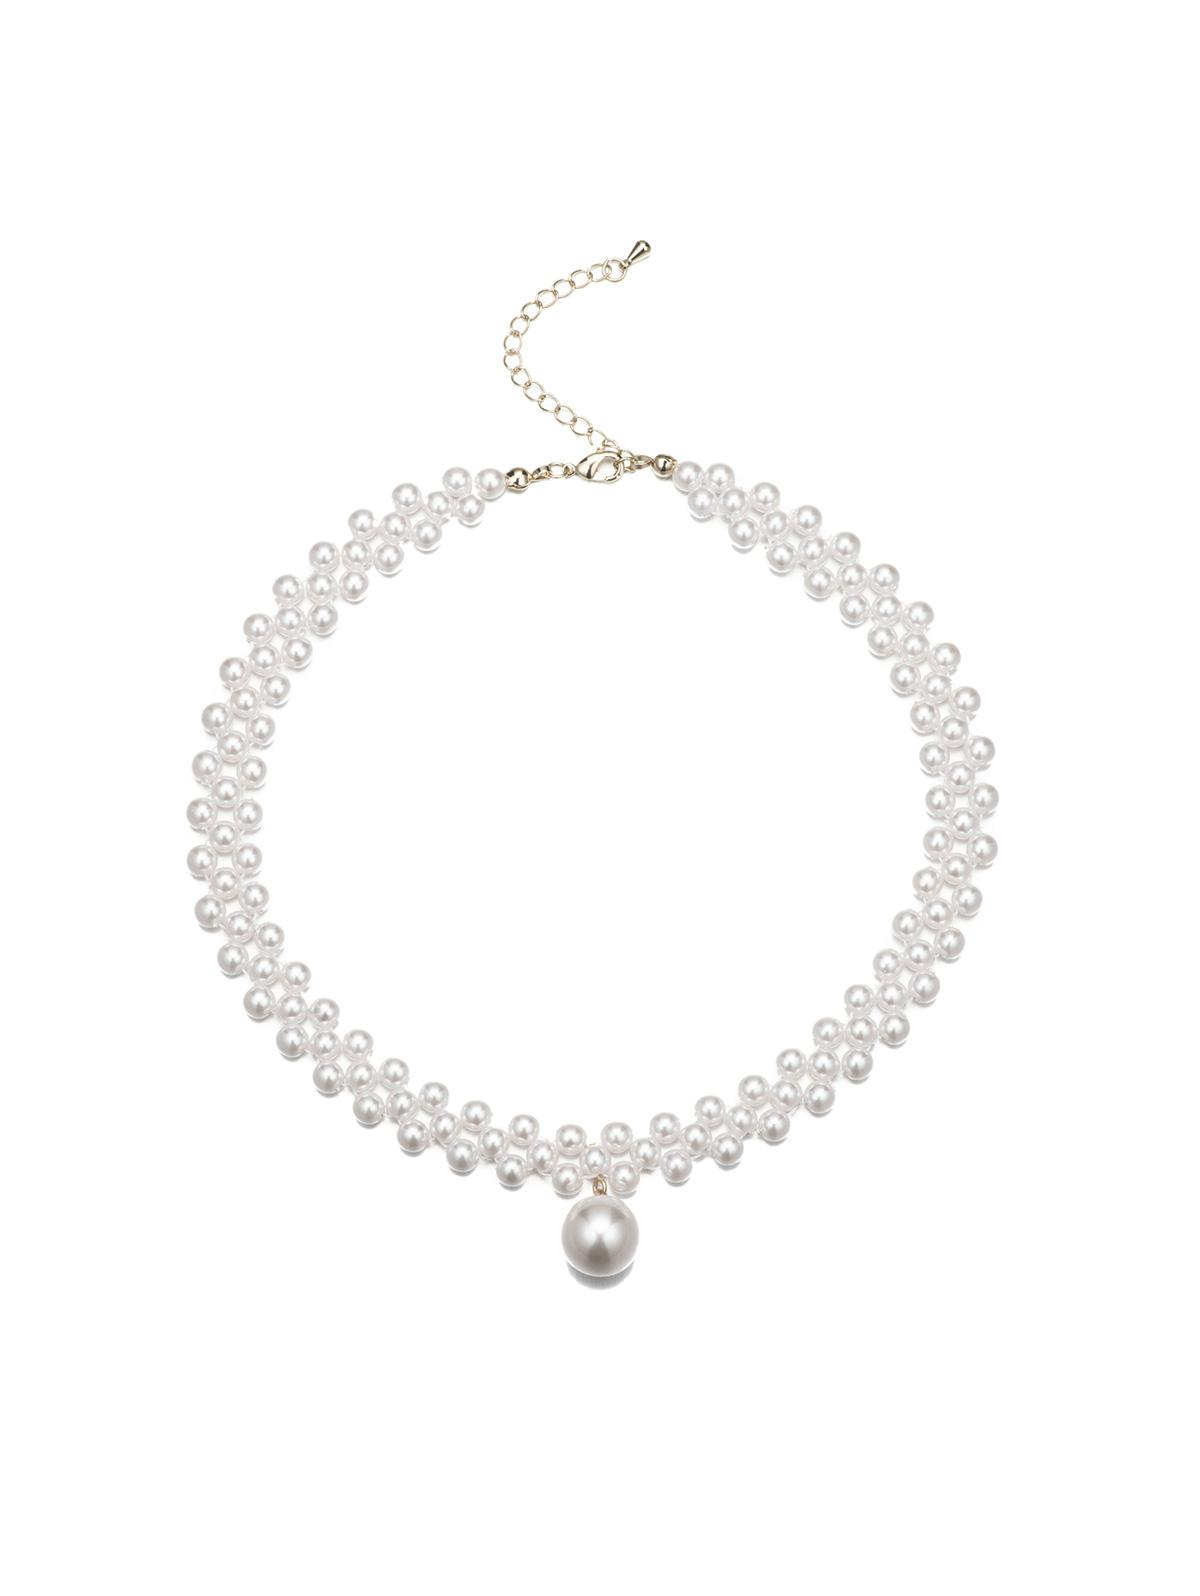 Faux Pearl Beaded Choker Necklace